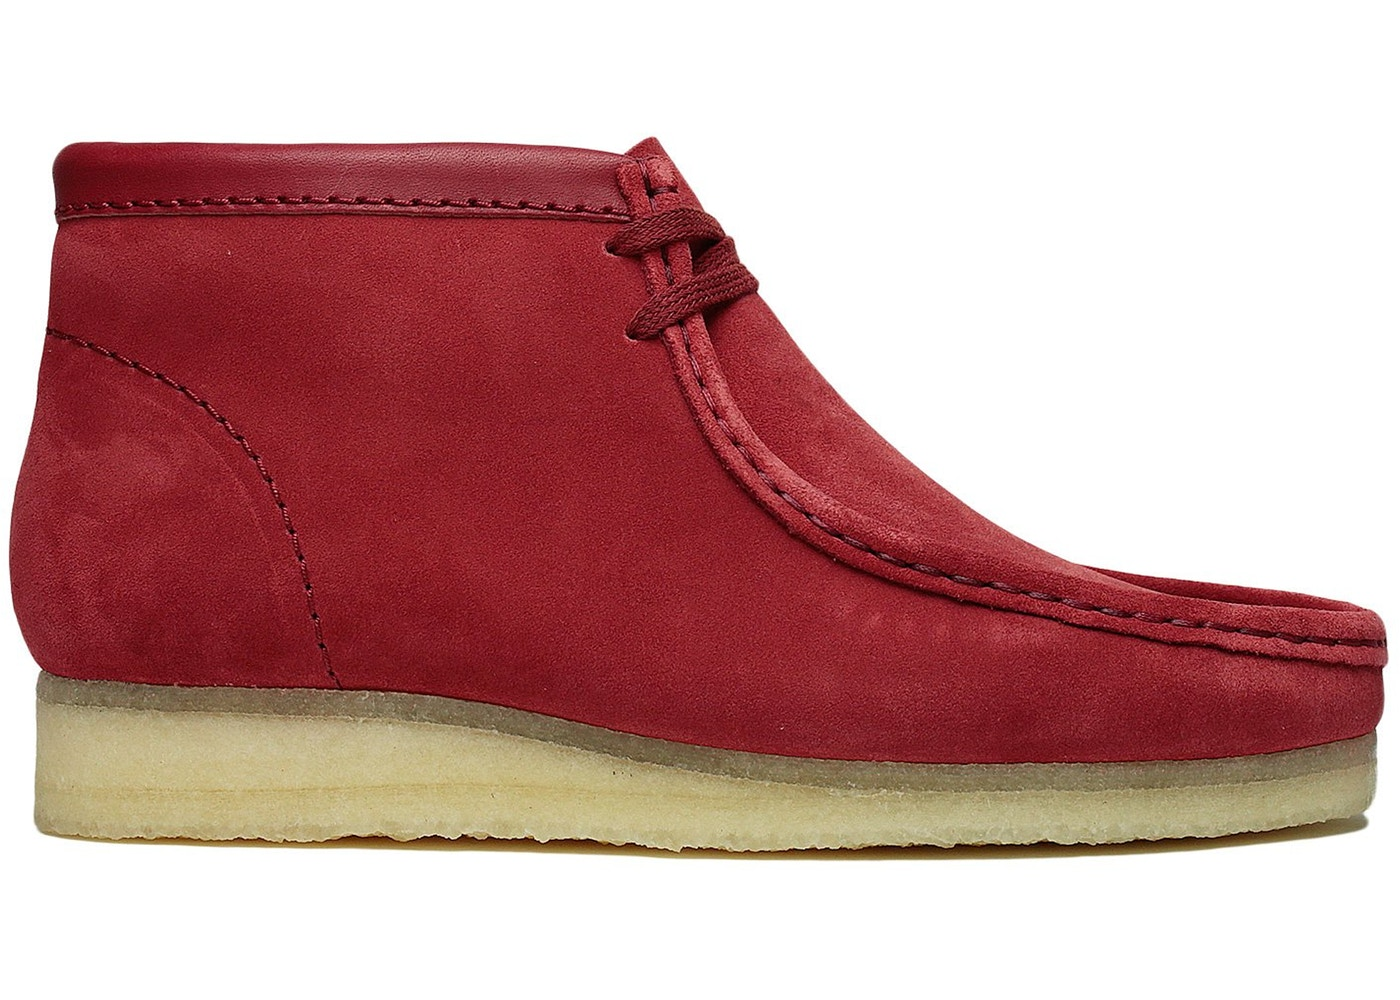 38a070014f0 Clarks Wallabees Extra Butter x The Halal Guys Chili